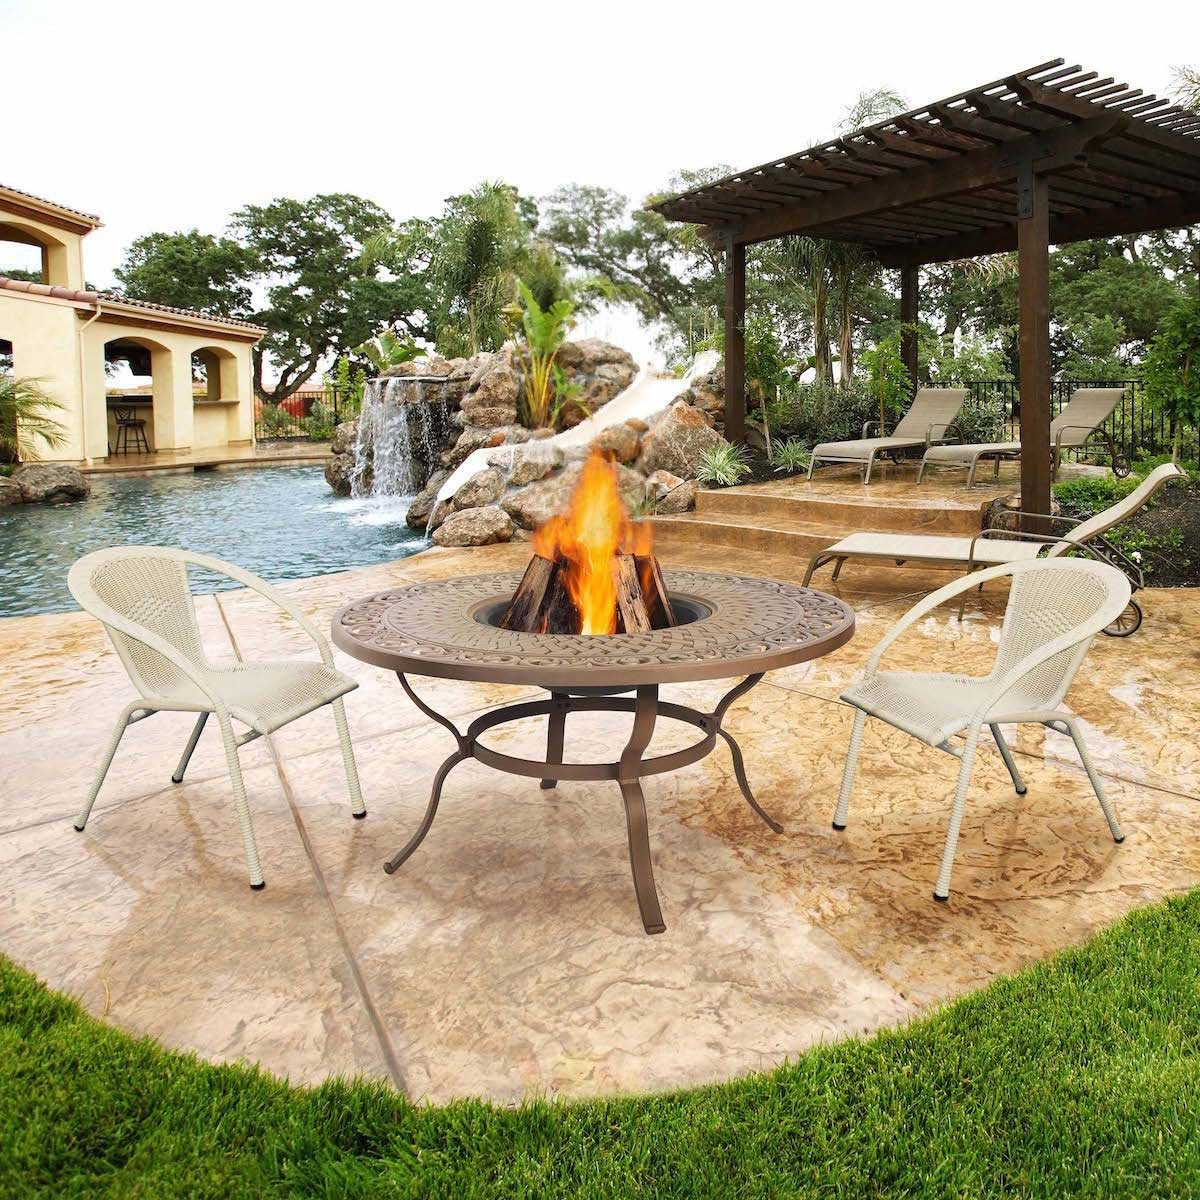 Understanding The Spindle Or Buc ee's Fire Pits That Great For Outdoor Terrace | Roy Home Design